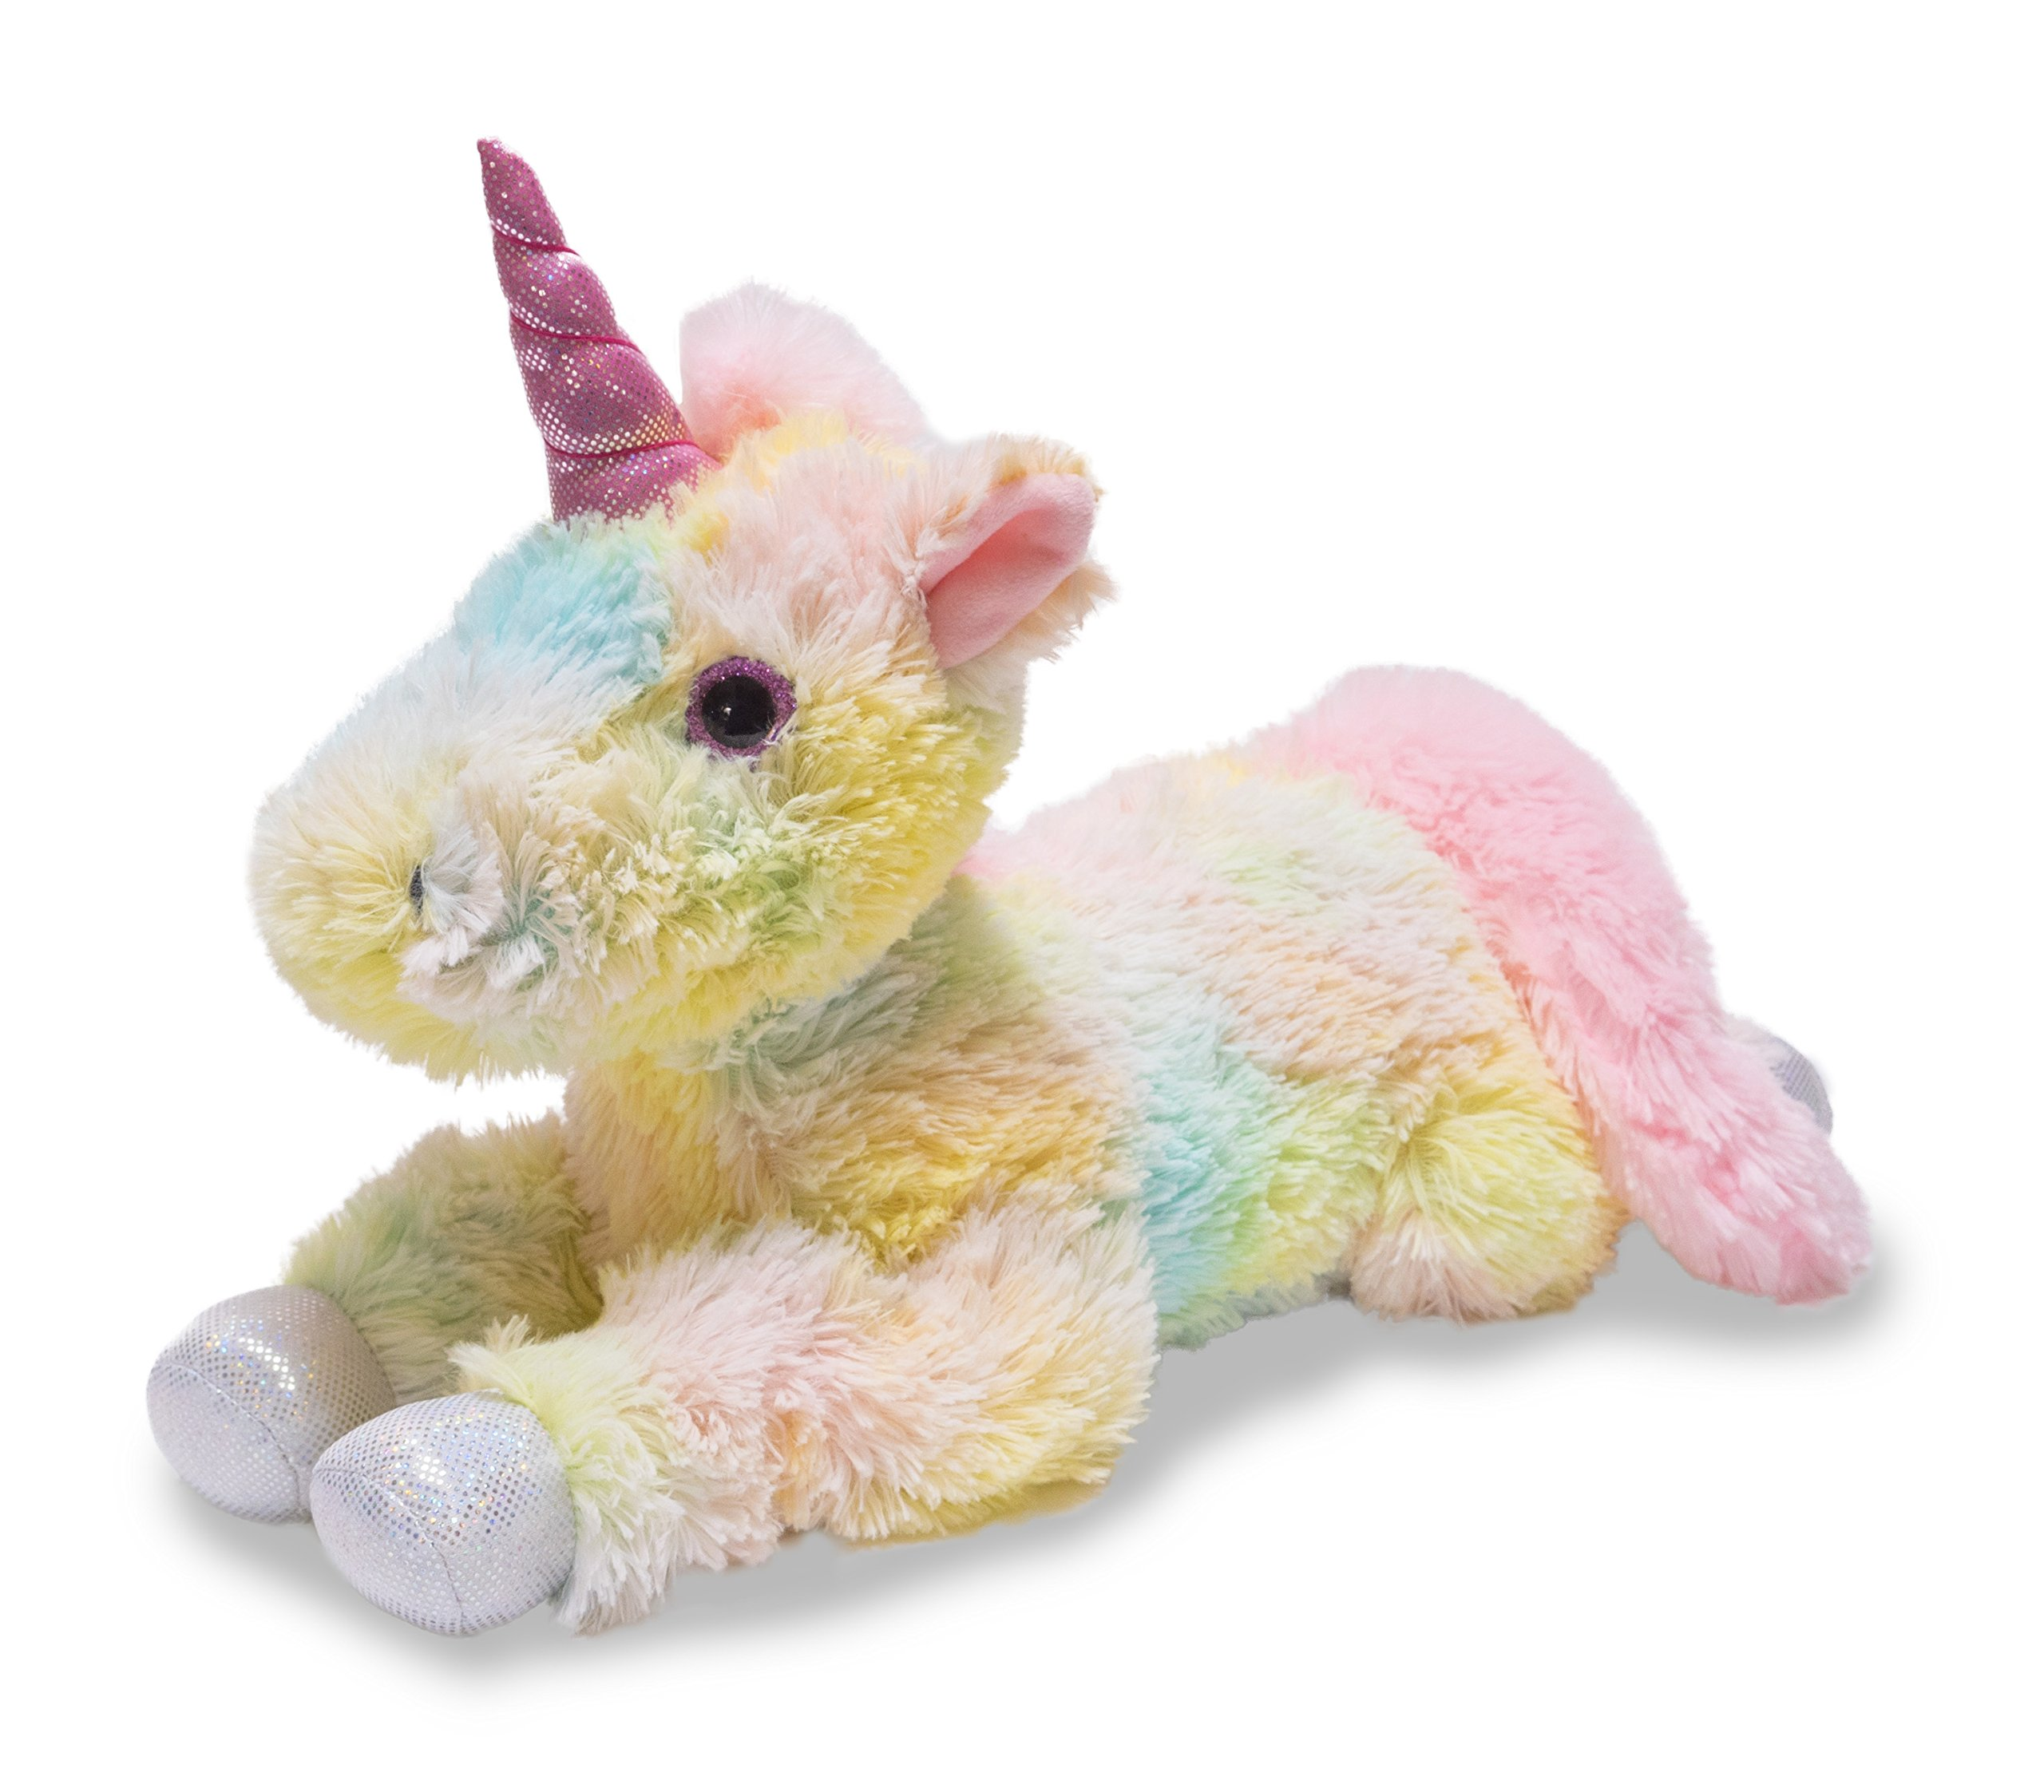 Cuddle Barn | Magical Sparkle Unicorn 20'' Soft Stuffed Animal Plush Toy | Eyes and Body Lights Up | Plays Magical Music and Chimes by Cuddle Barn